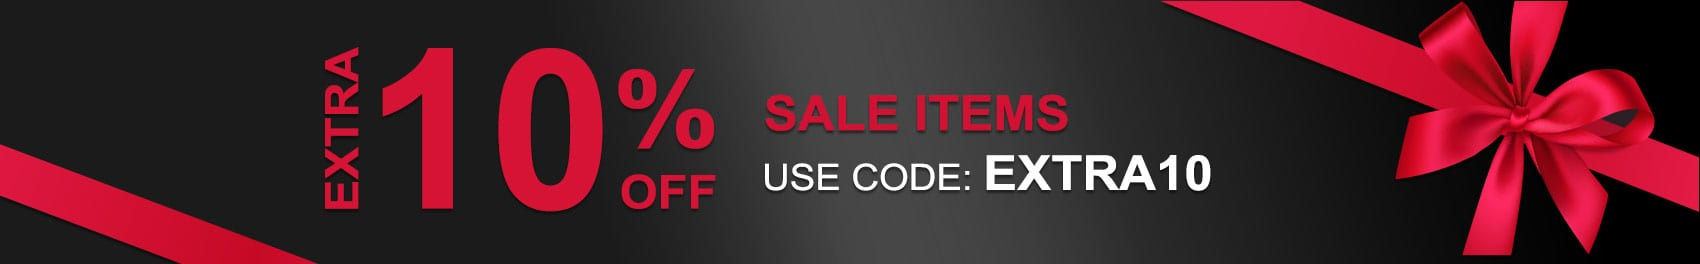 Extra 10% off on Sale Items-Use Code: EXTRA10 at checkout